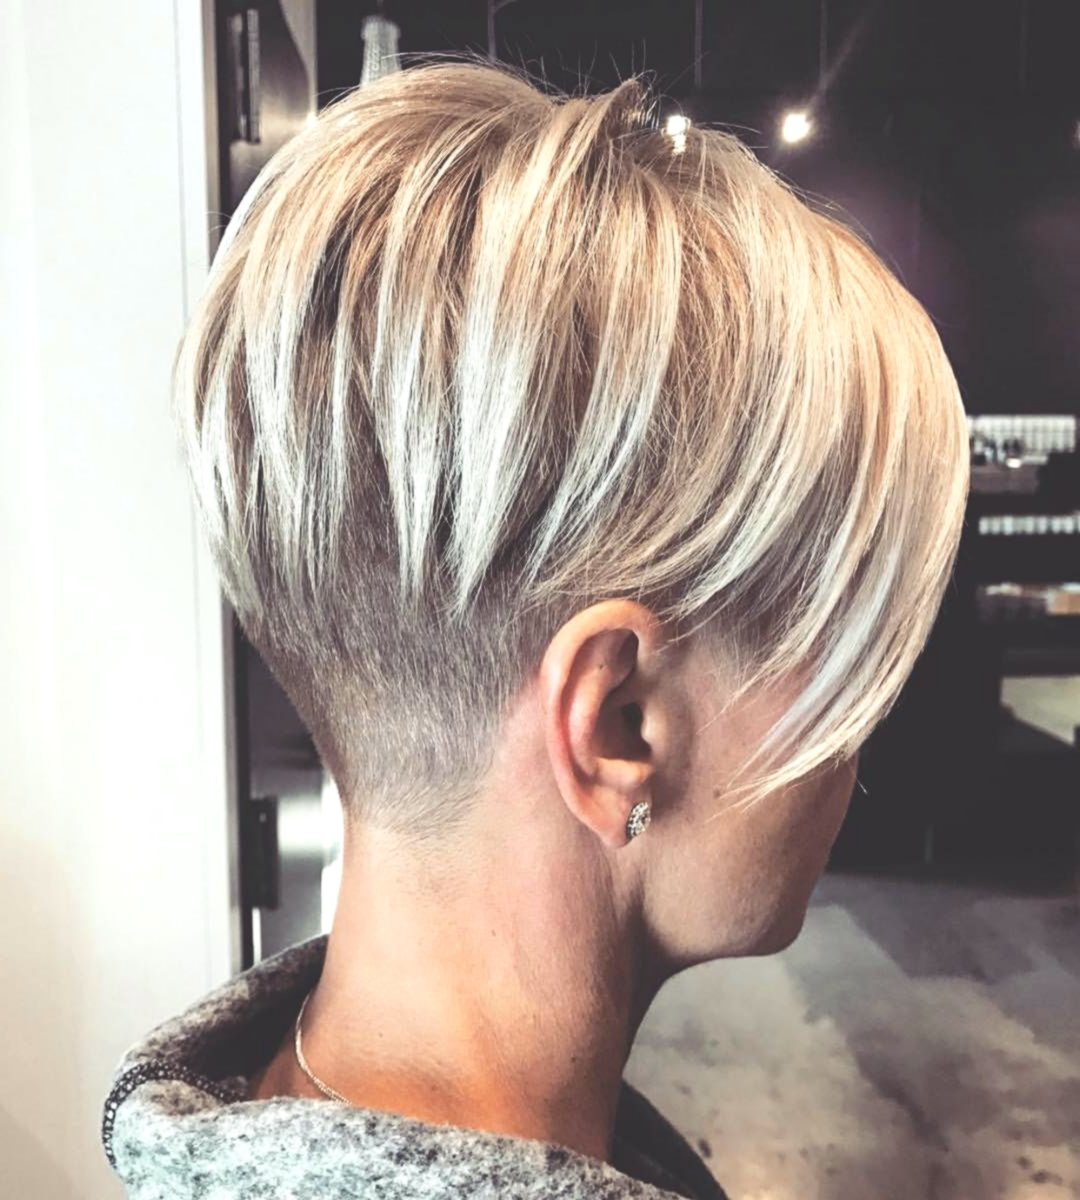 Stylish Hairstyles for Thick Face Design Elegant Hairstyles For Thick Face Patterns